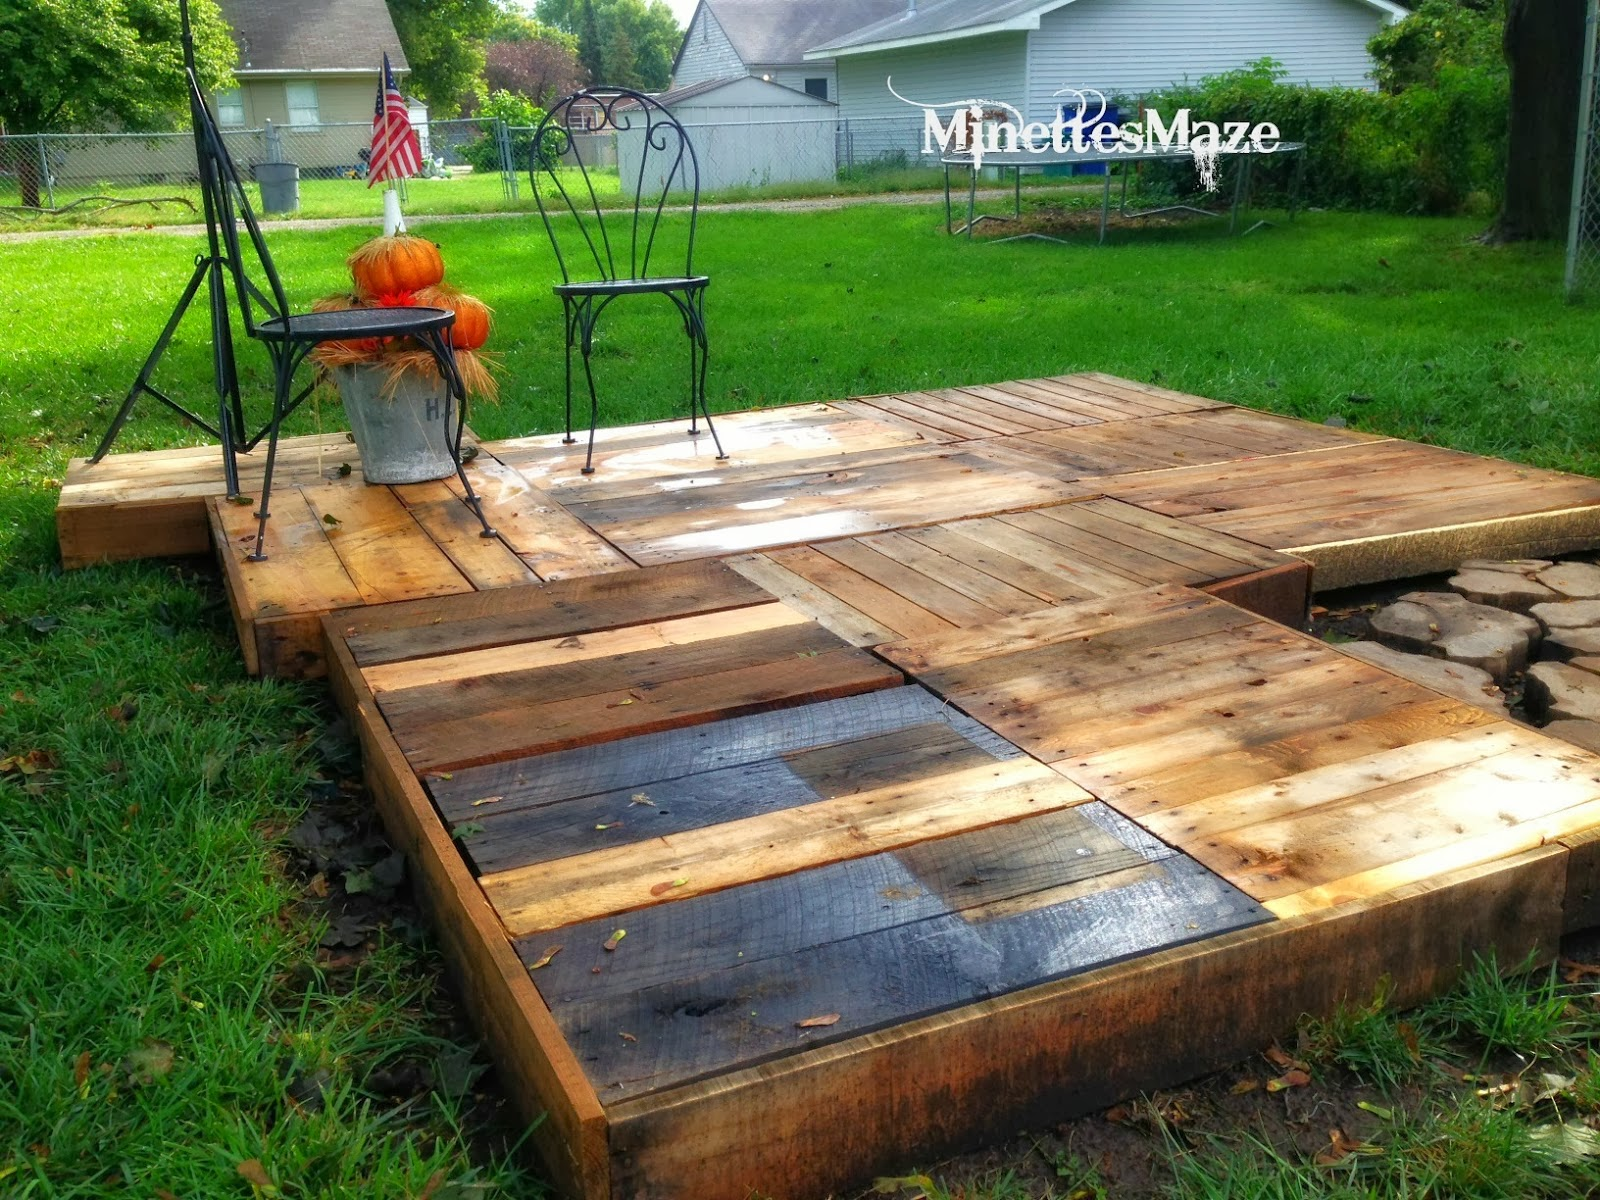 I love that junk an outdoor pallet deck minettes maze for Pallet ideas for outside